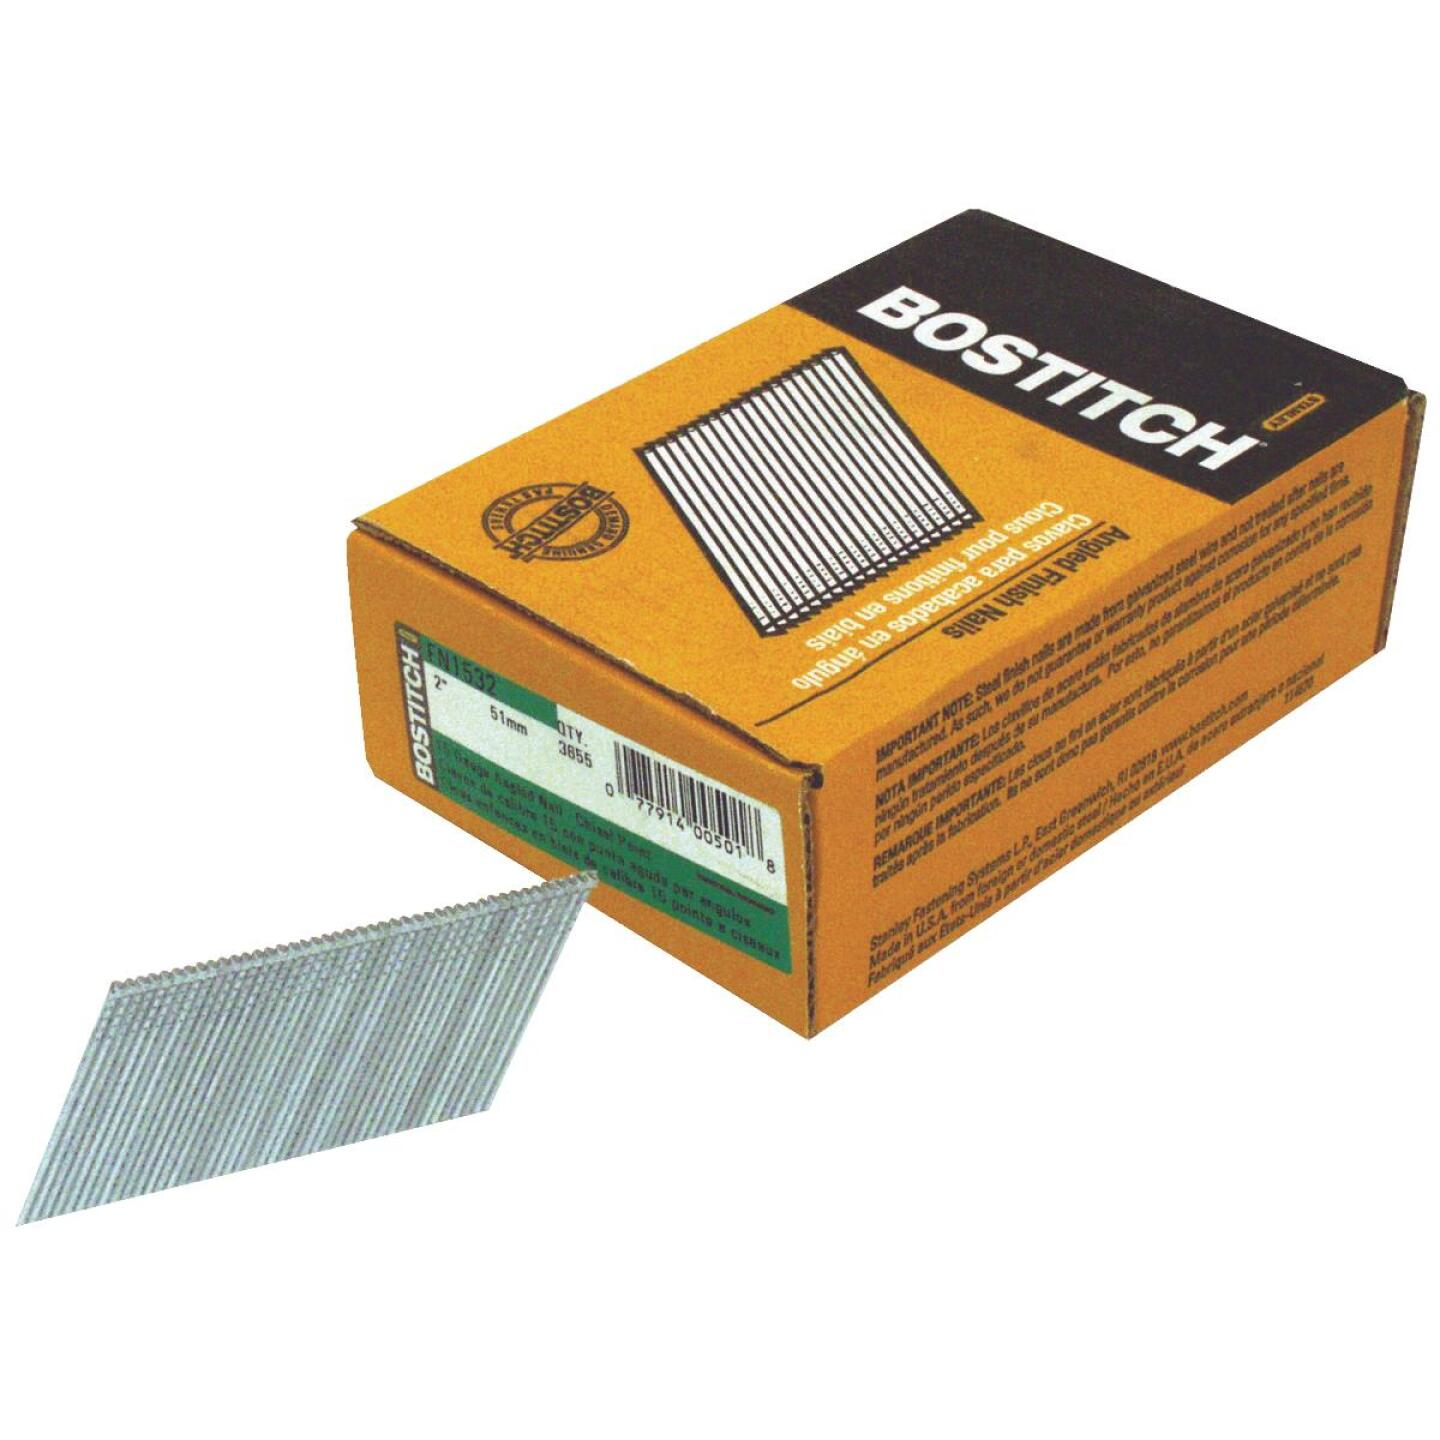 Bostitch 15-Gauge Coated 25 Degree FN-Style Angled Finish Nail, 2 In. (3655 Ct.) Image 1